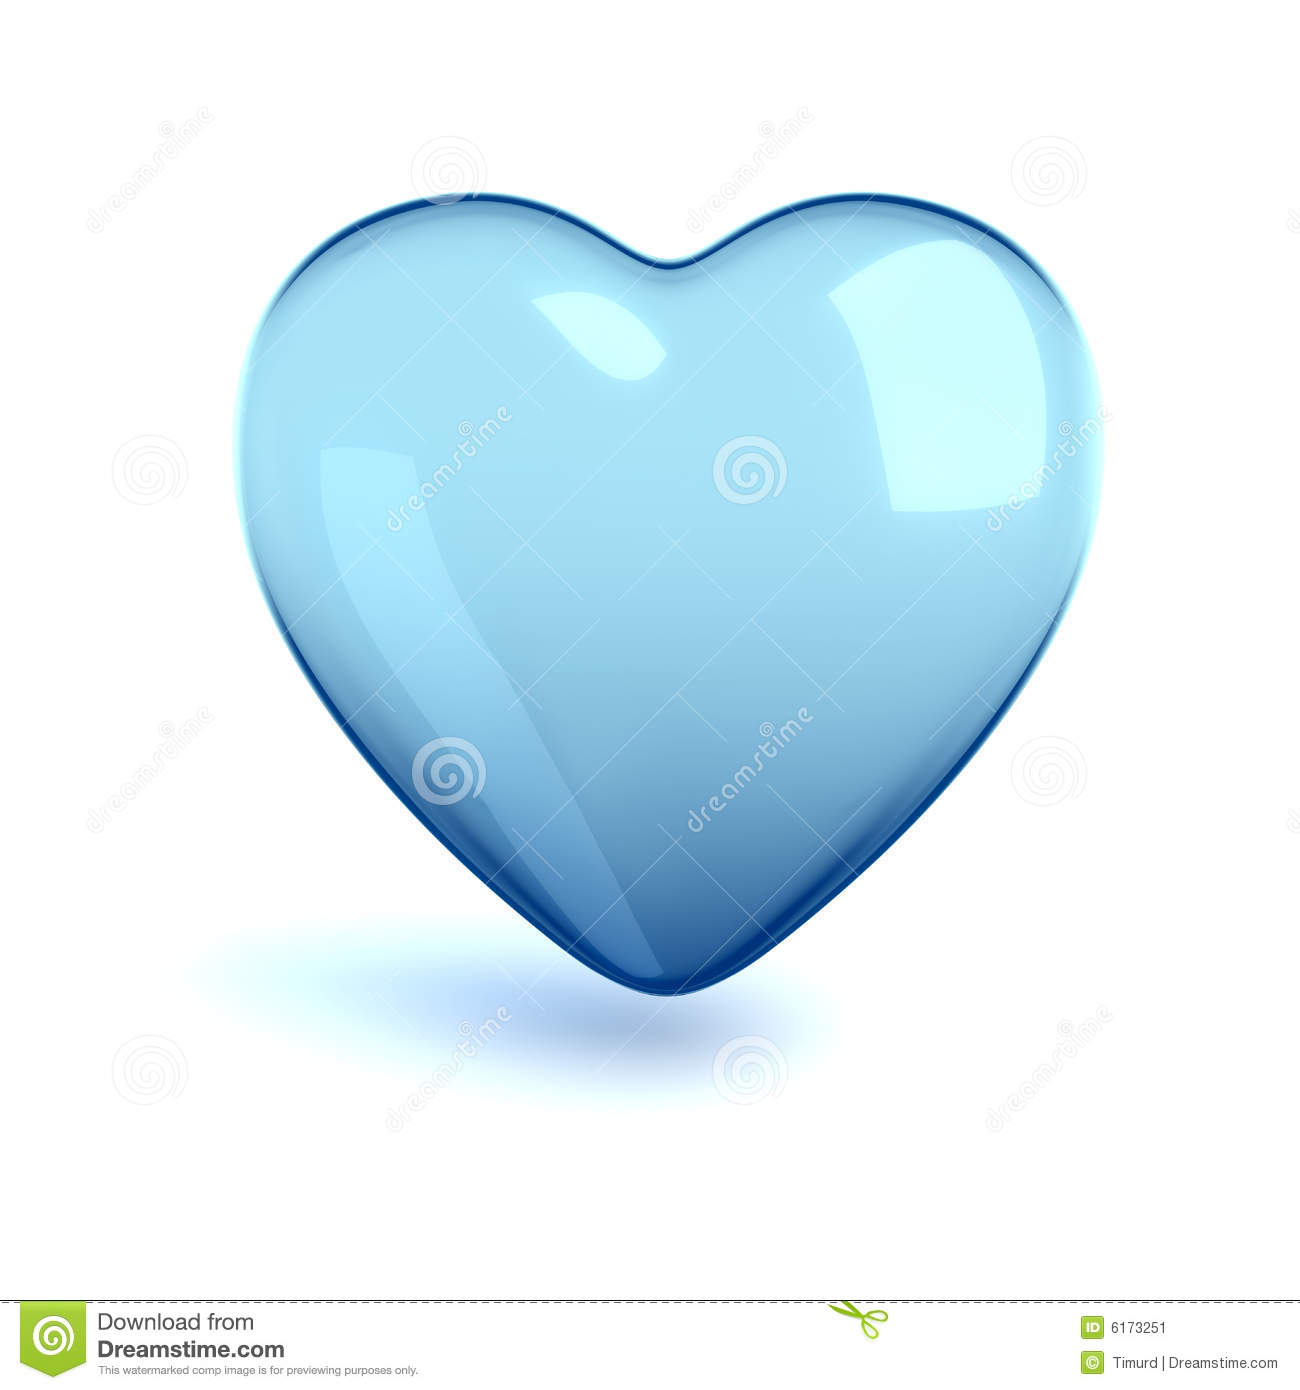 Cold Glass Heart Stock Image - Image: 6173251